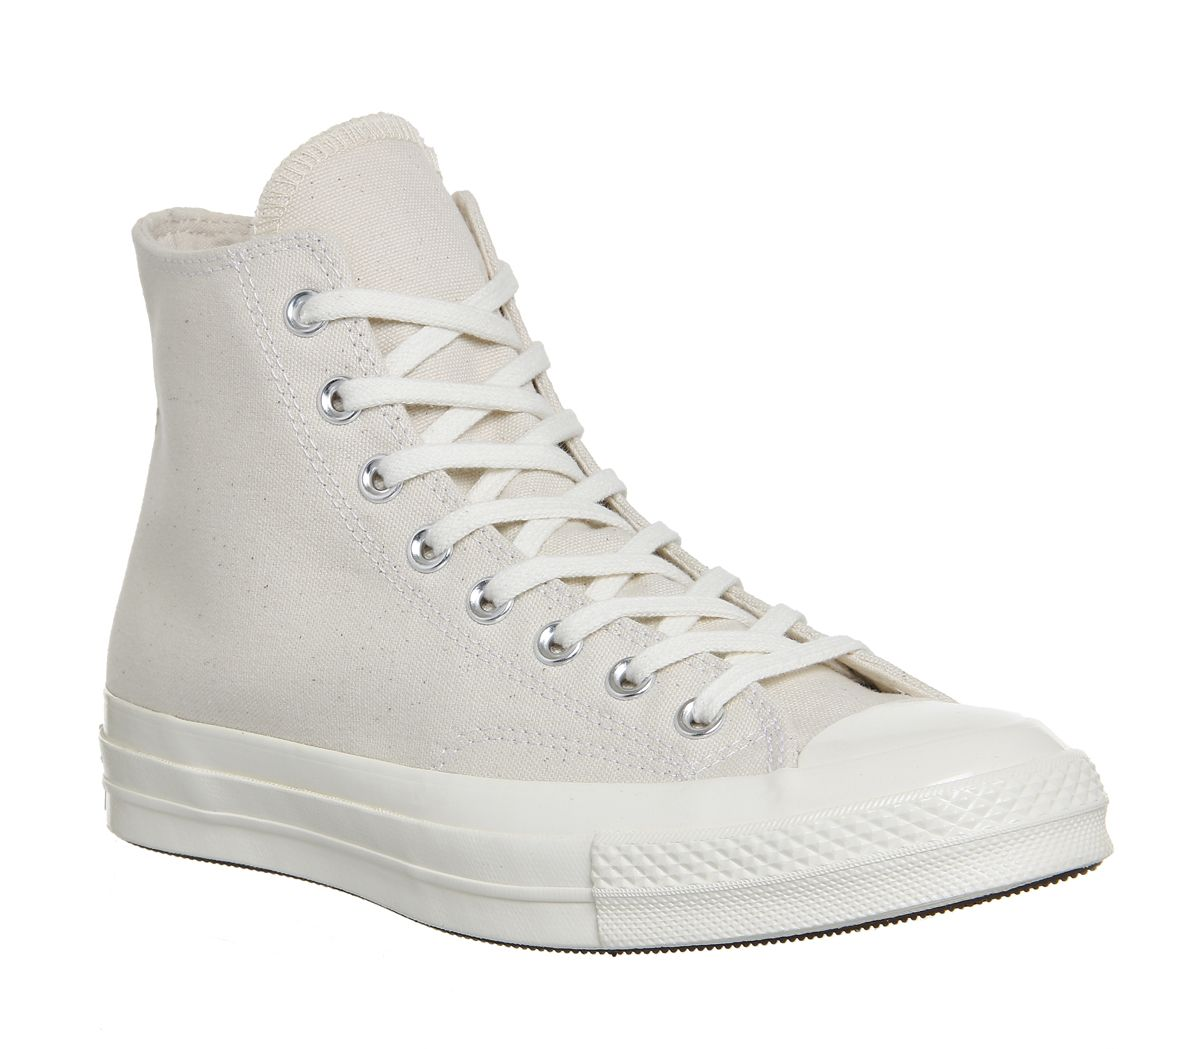 c8ae24035ab4 Converse All Star Hi 70 s Natural Parchment - His trainers